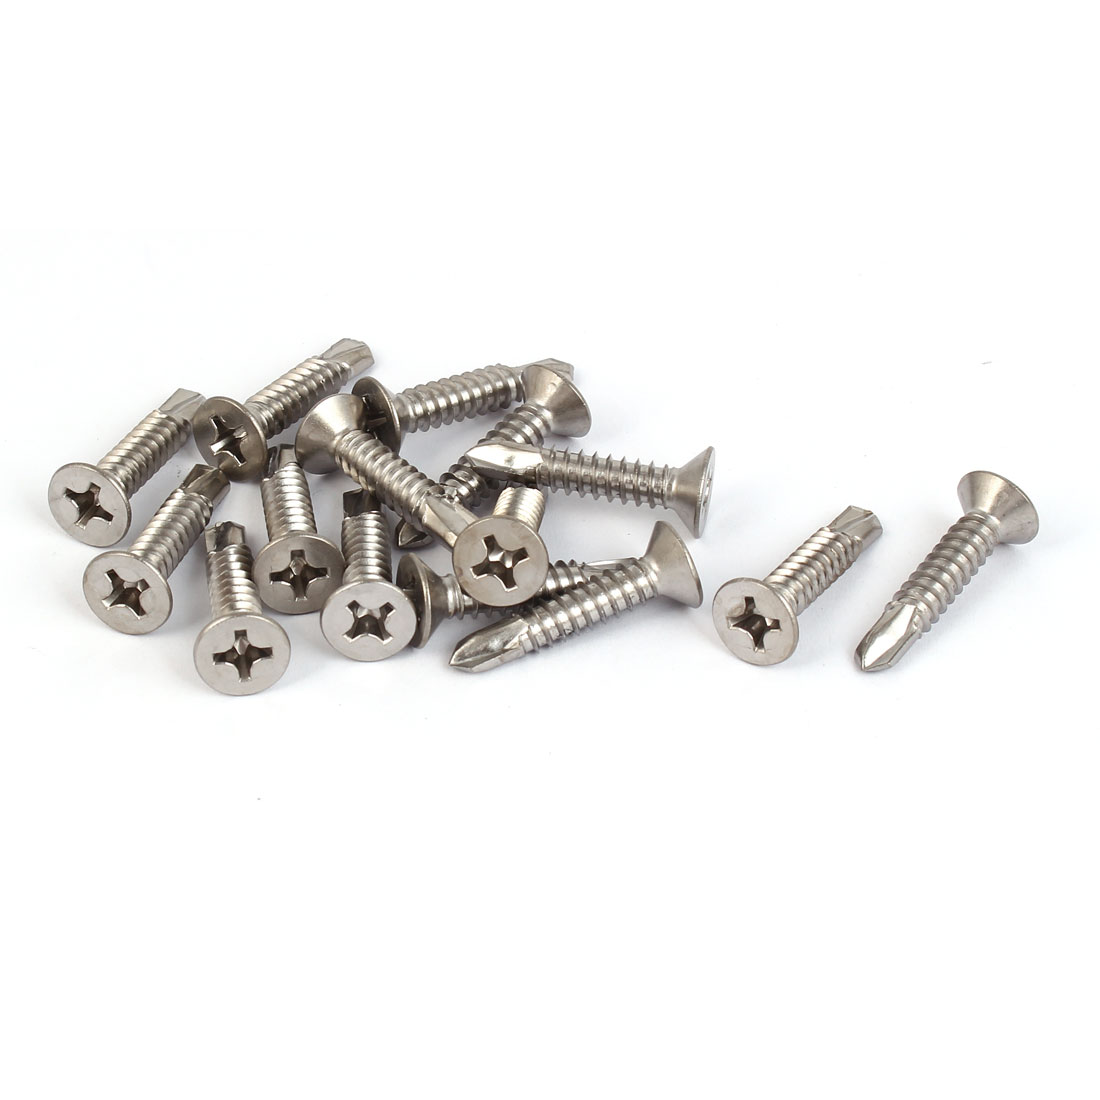 M6.3 x 19mm #14 Thread Self Drilling Phillips Countersunk Head Screws 15 Pcs